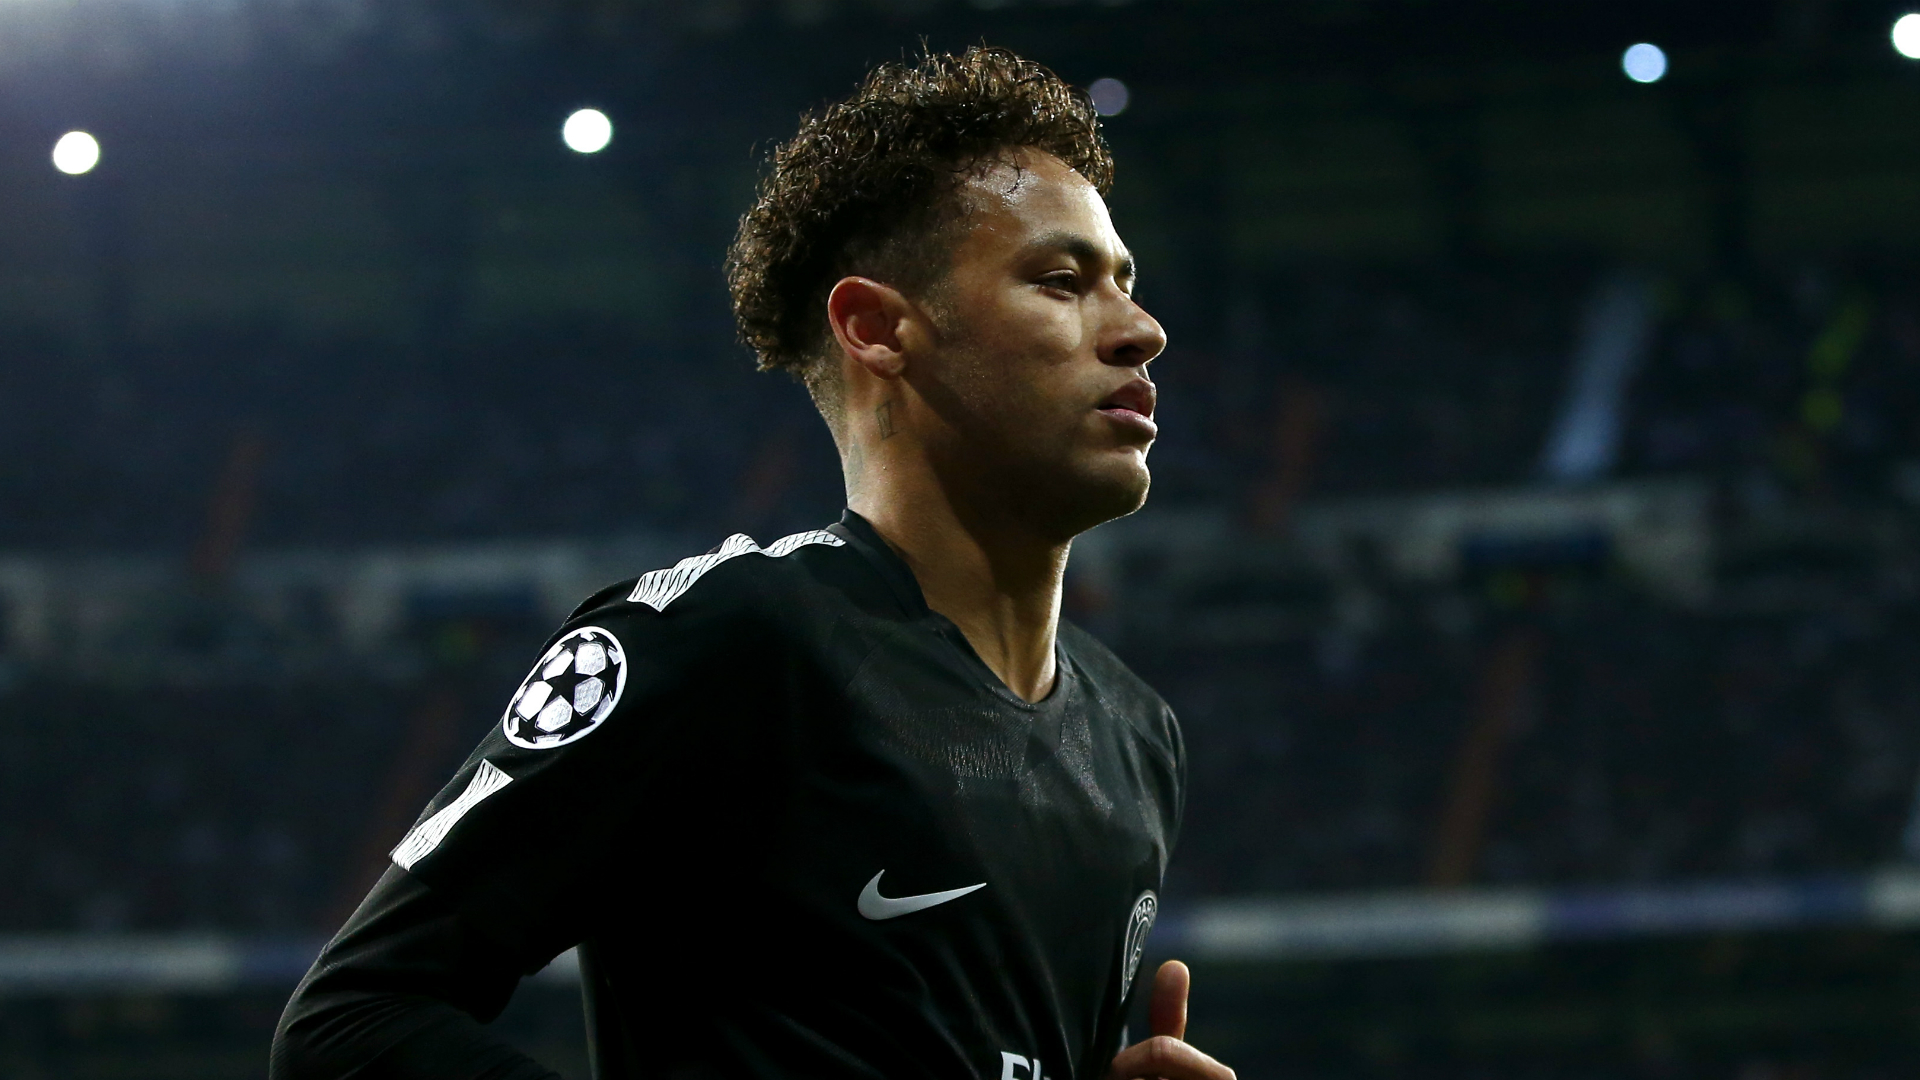 Neymar risks Euro ban after foul-mouthed rant at ref